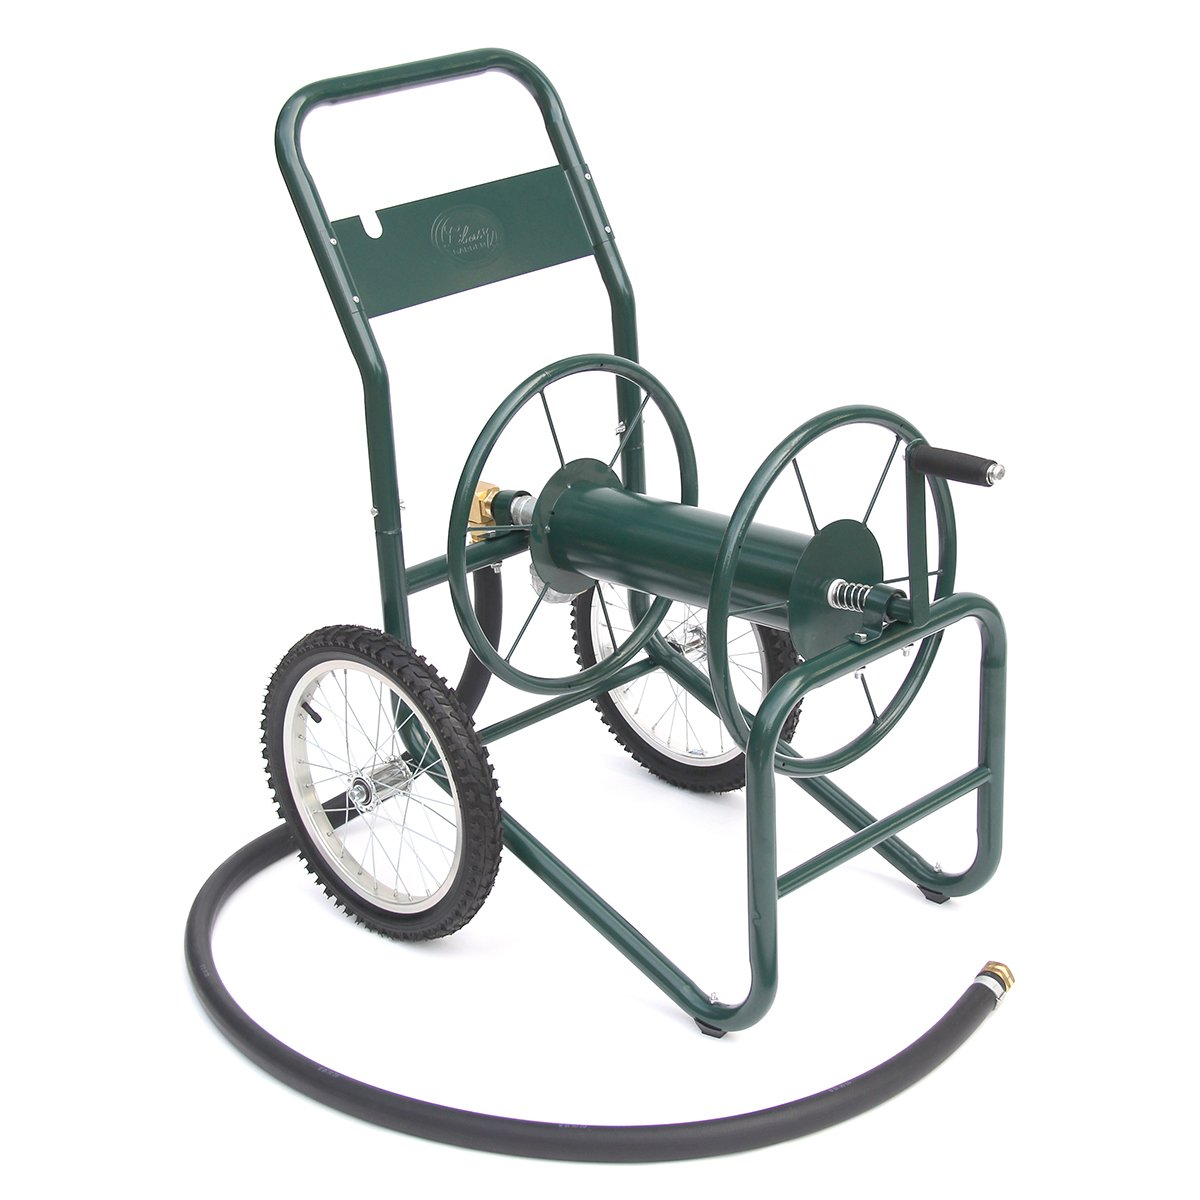 Liberty Garden Products 1180-2 Industrial 2-Wheel Garden Hose Reel Cart, Holds 150-Feet of 1-Inch Hose - Green by Liberty Garden Products